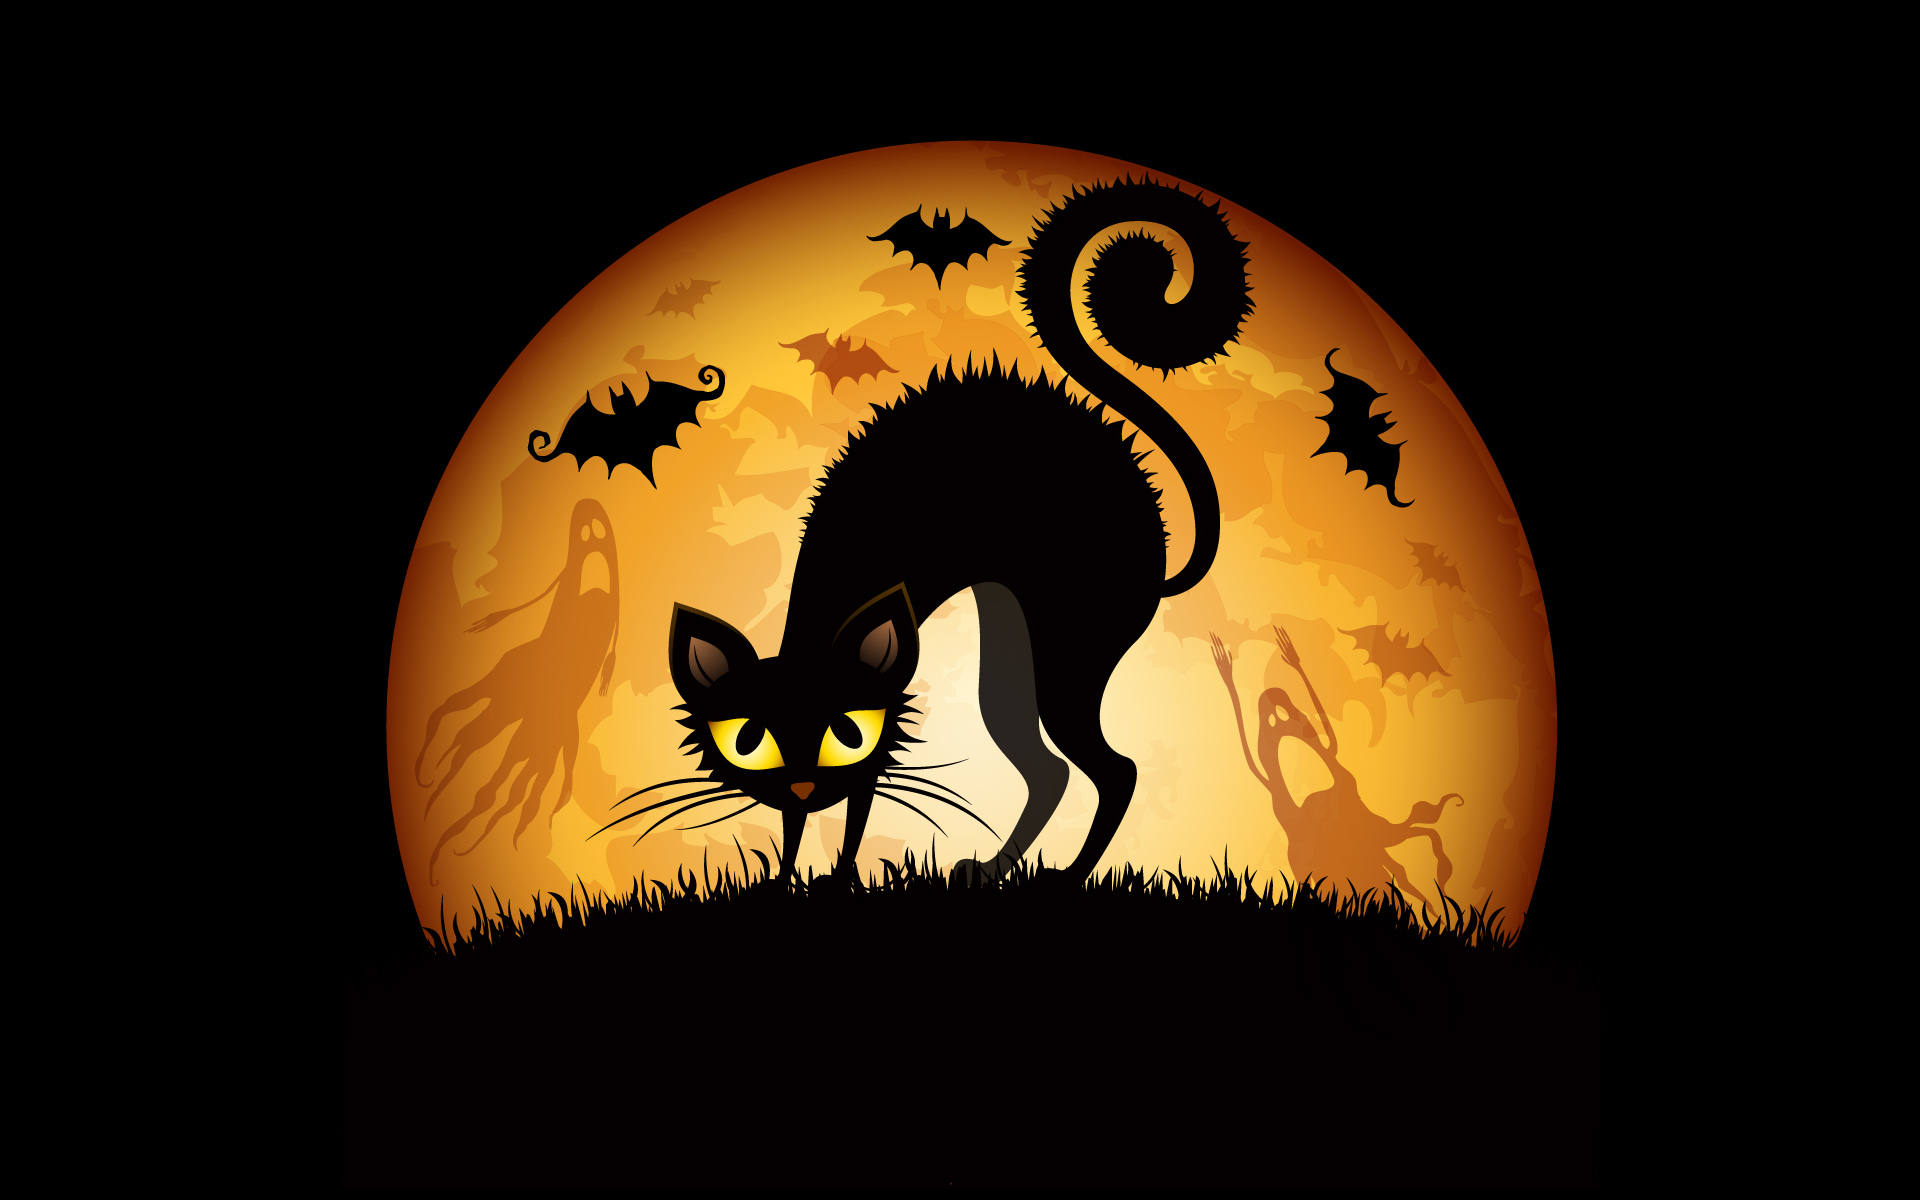 Bats Cat Halloween Wallpaper Image